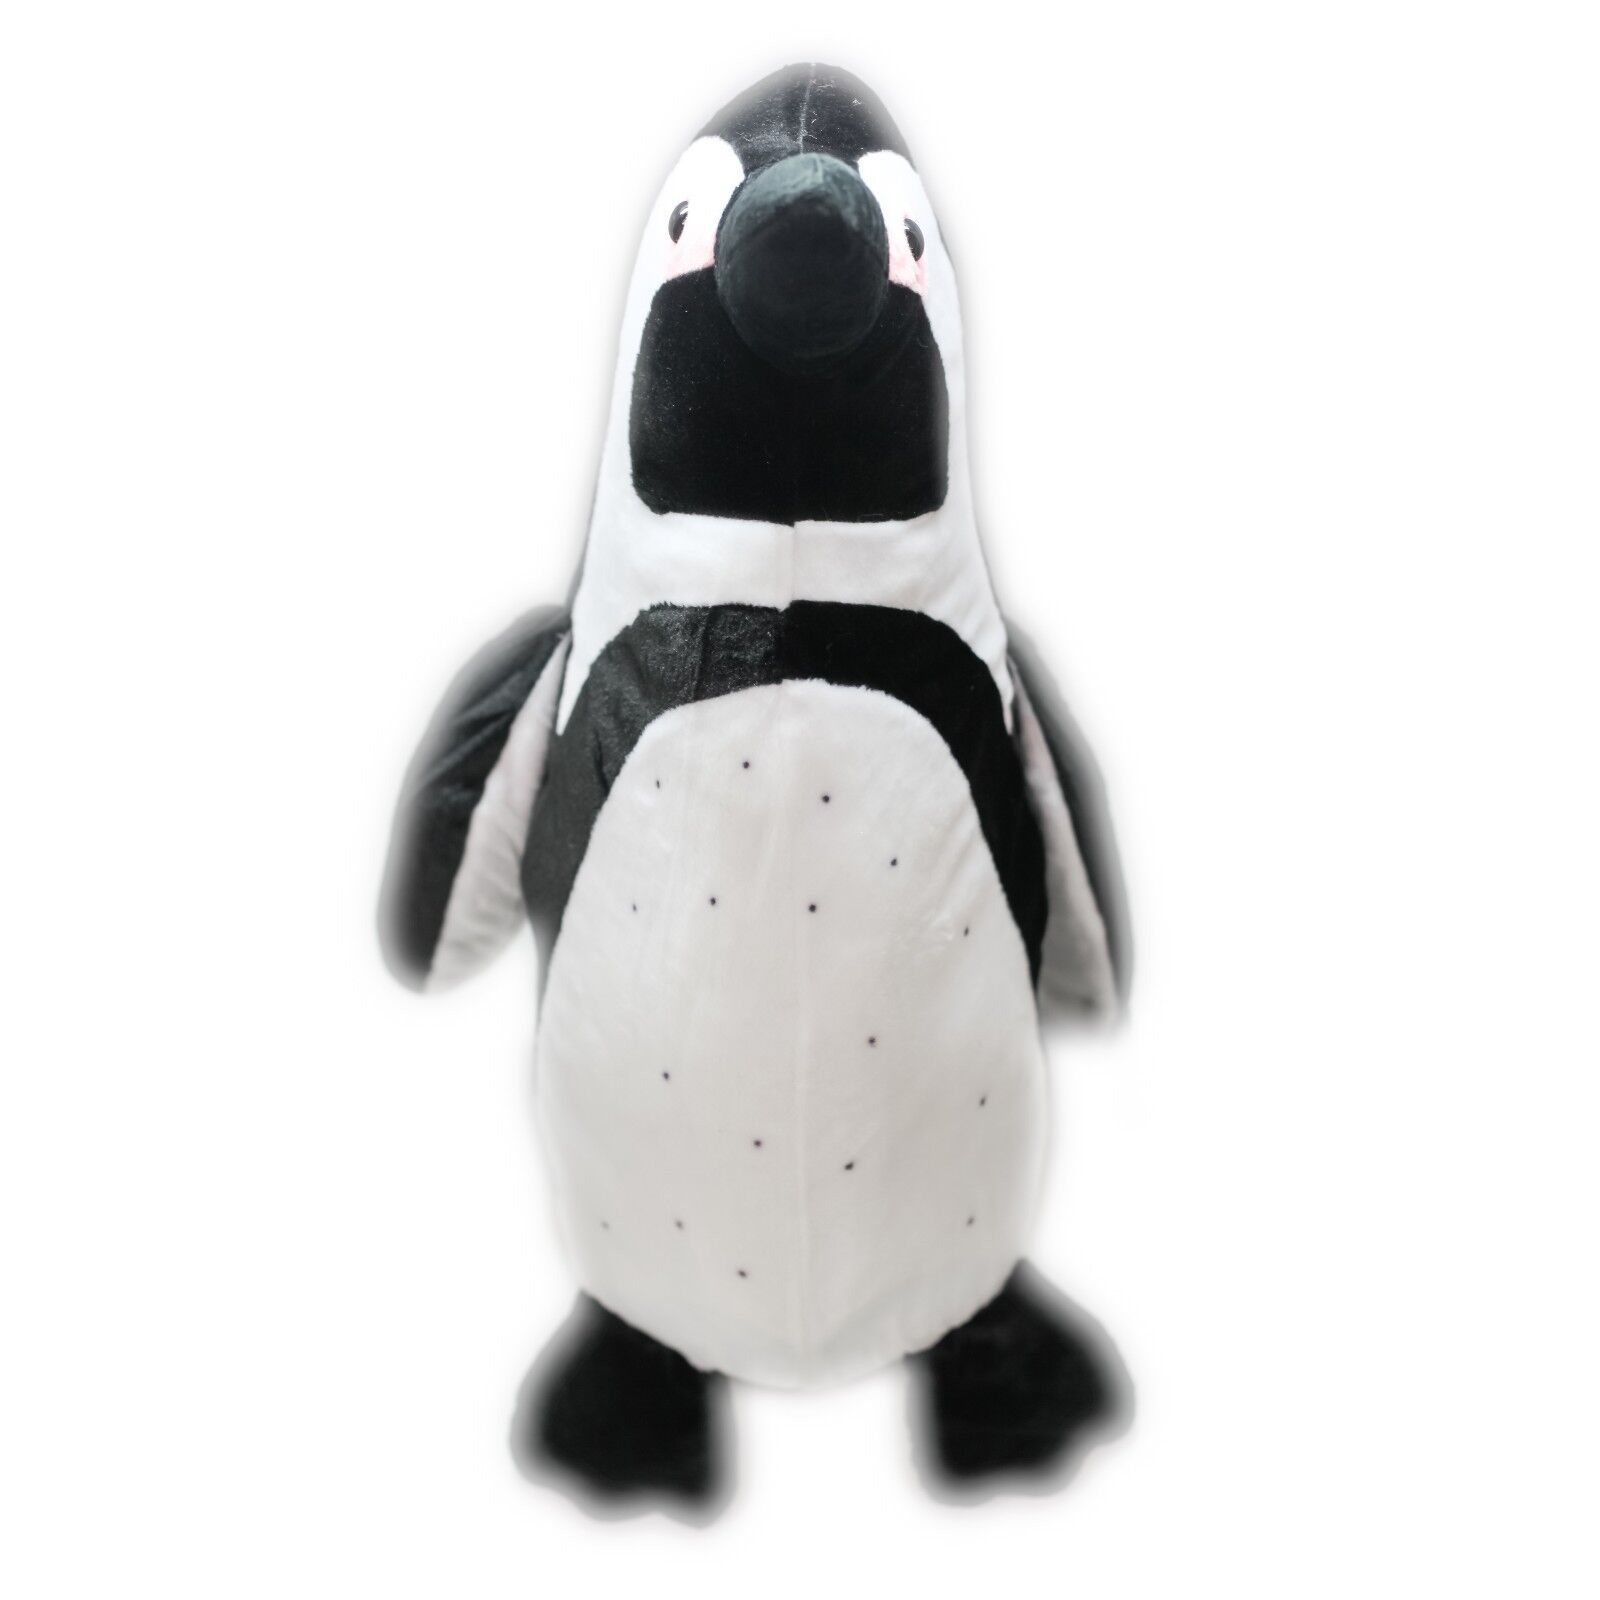 Genuine Fiesta Toy African Spotted Penguin Plush Toy Nature Themed Gifting